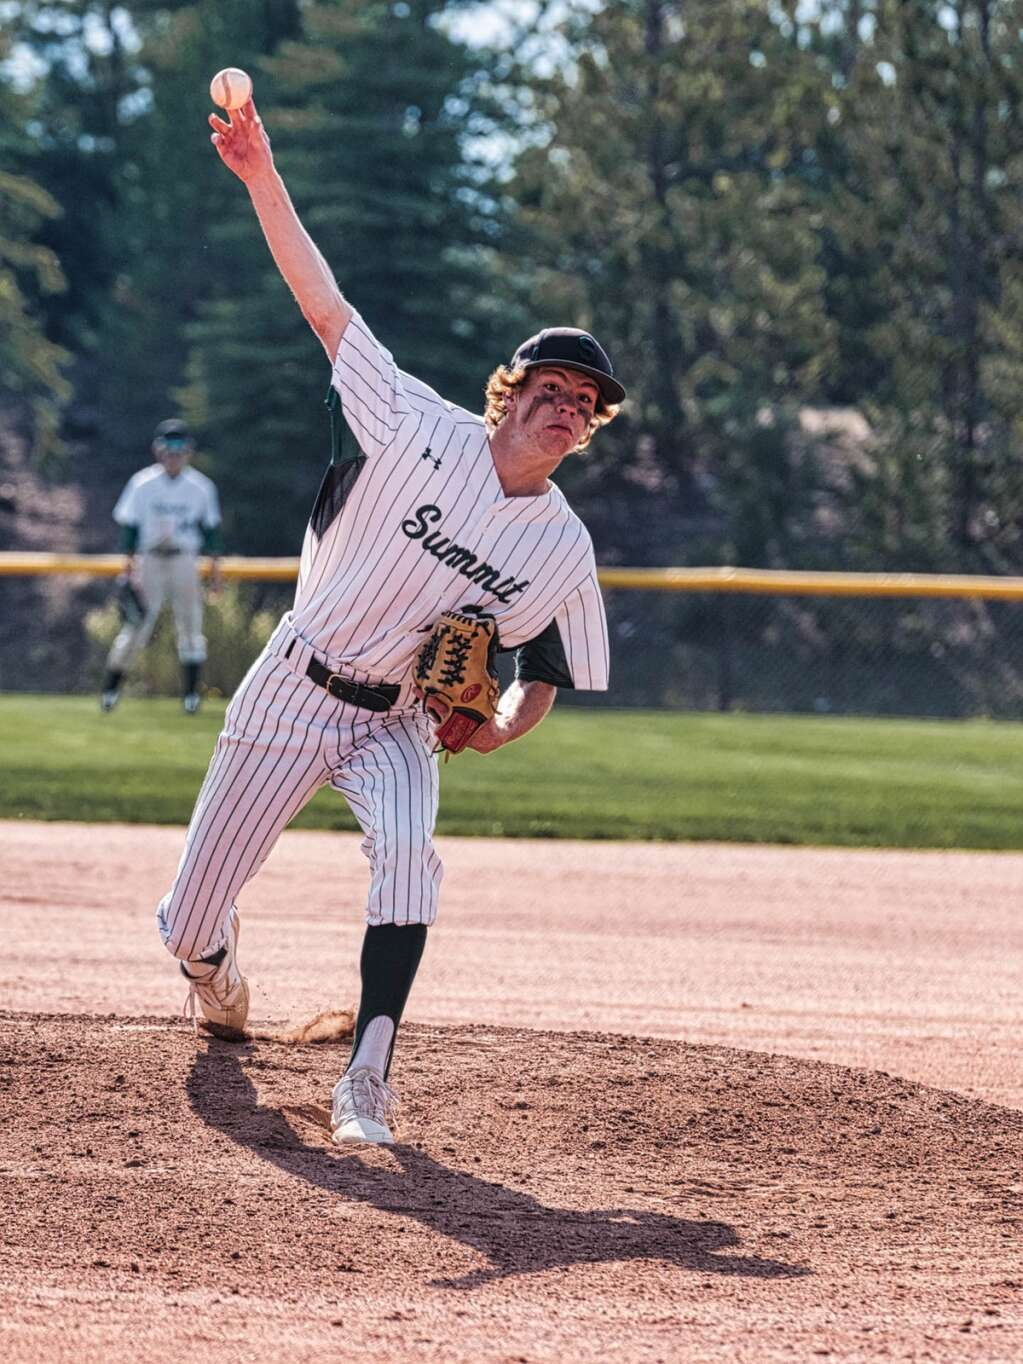 Summit pitcher Charlie Pedigo hurls one toward home plate during Summit's pair of wins over Steamboat Springs at the Frisco Peninsula Recreation Area in Frisco on Tuesday. | Photo by Joel Wexler / Rocky Mountain.Photography